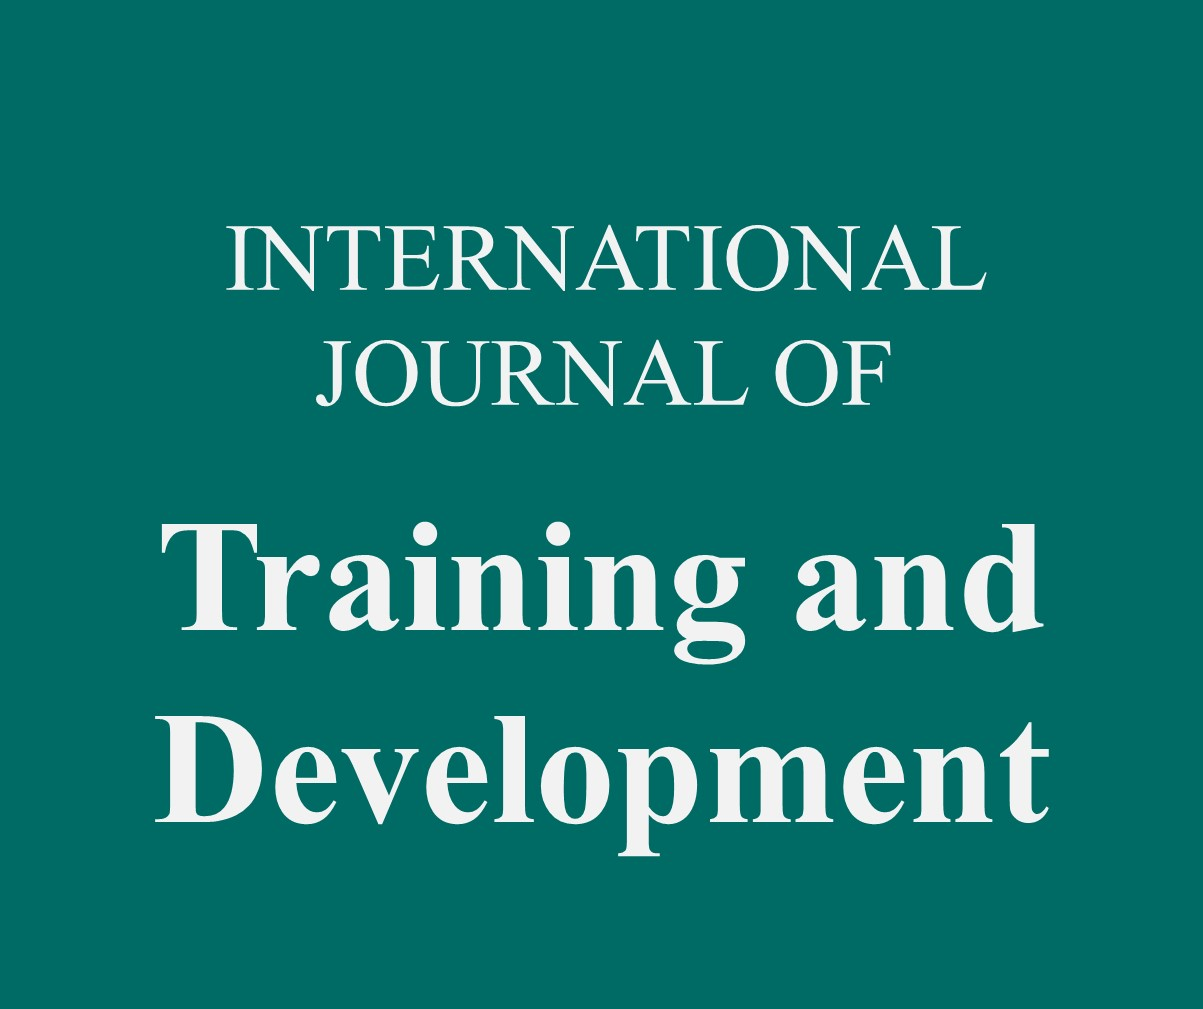 International Journal of Training and Development